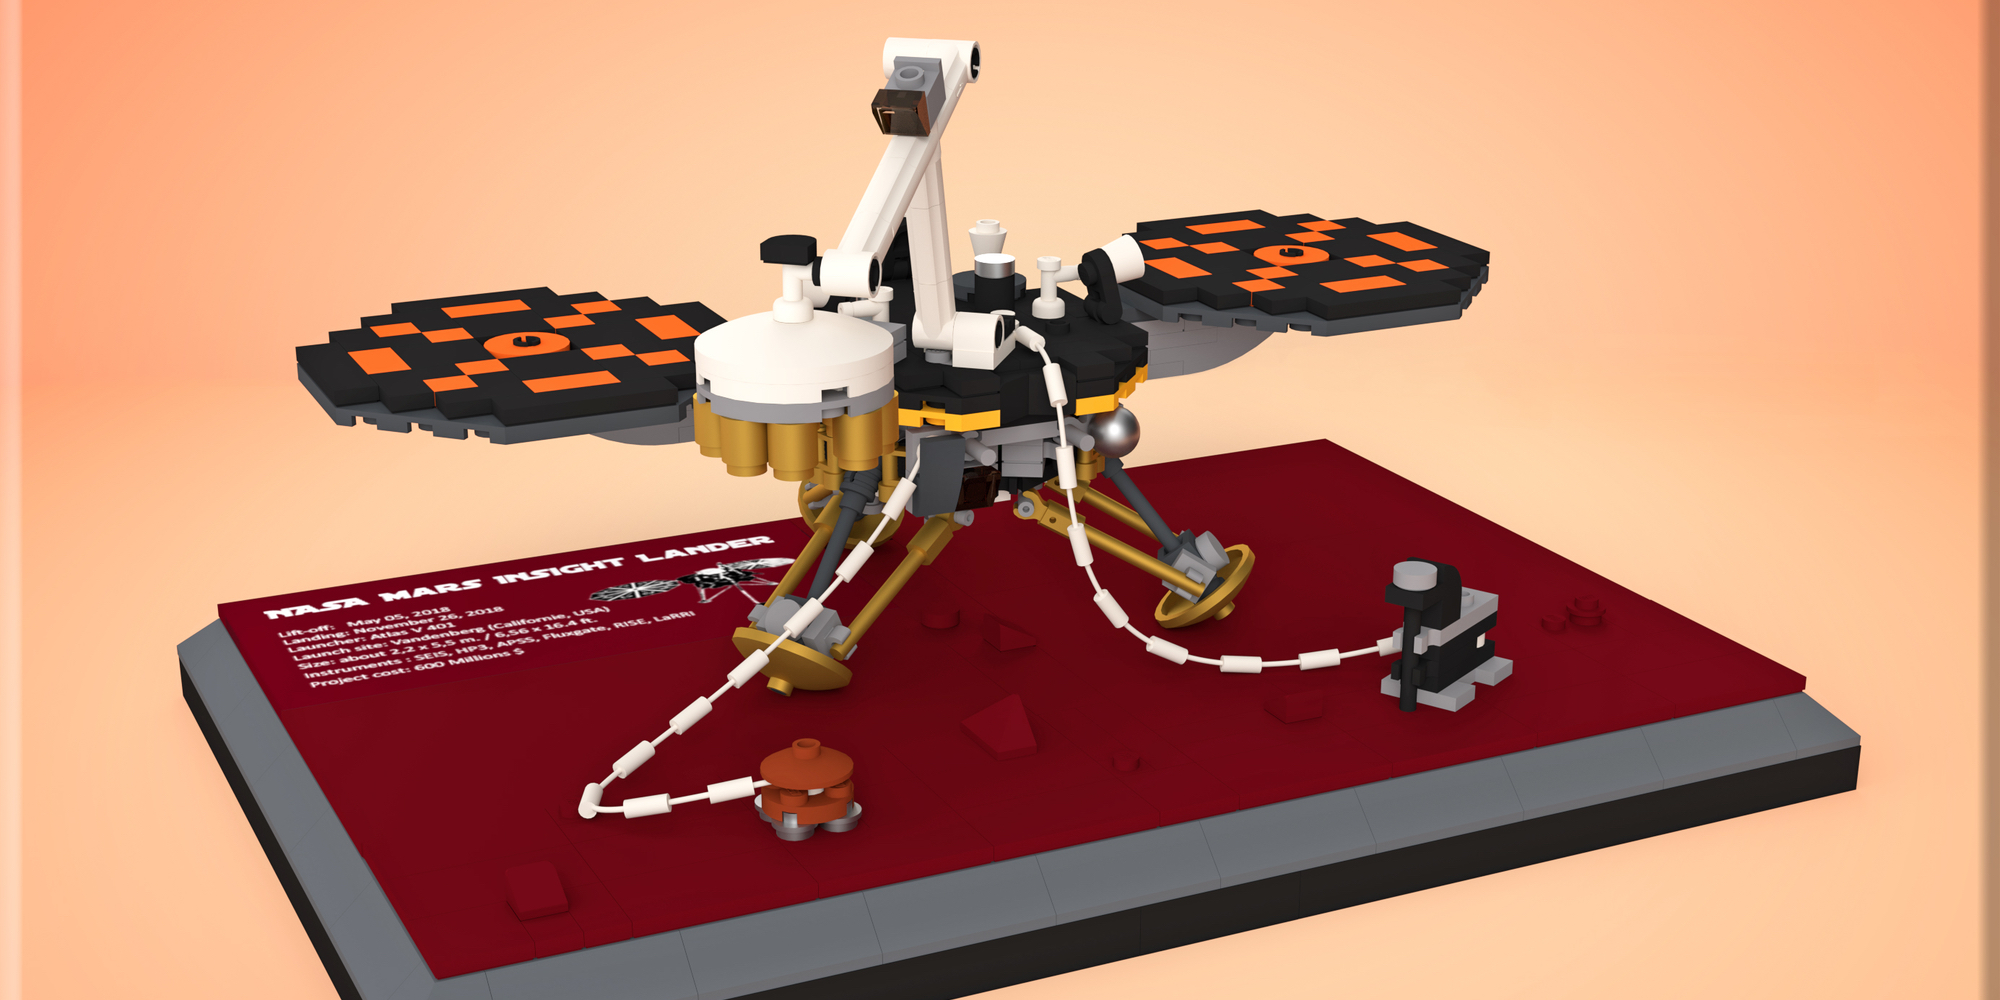 November's LEGO Ideas kits Insight